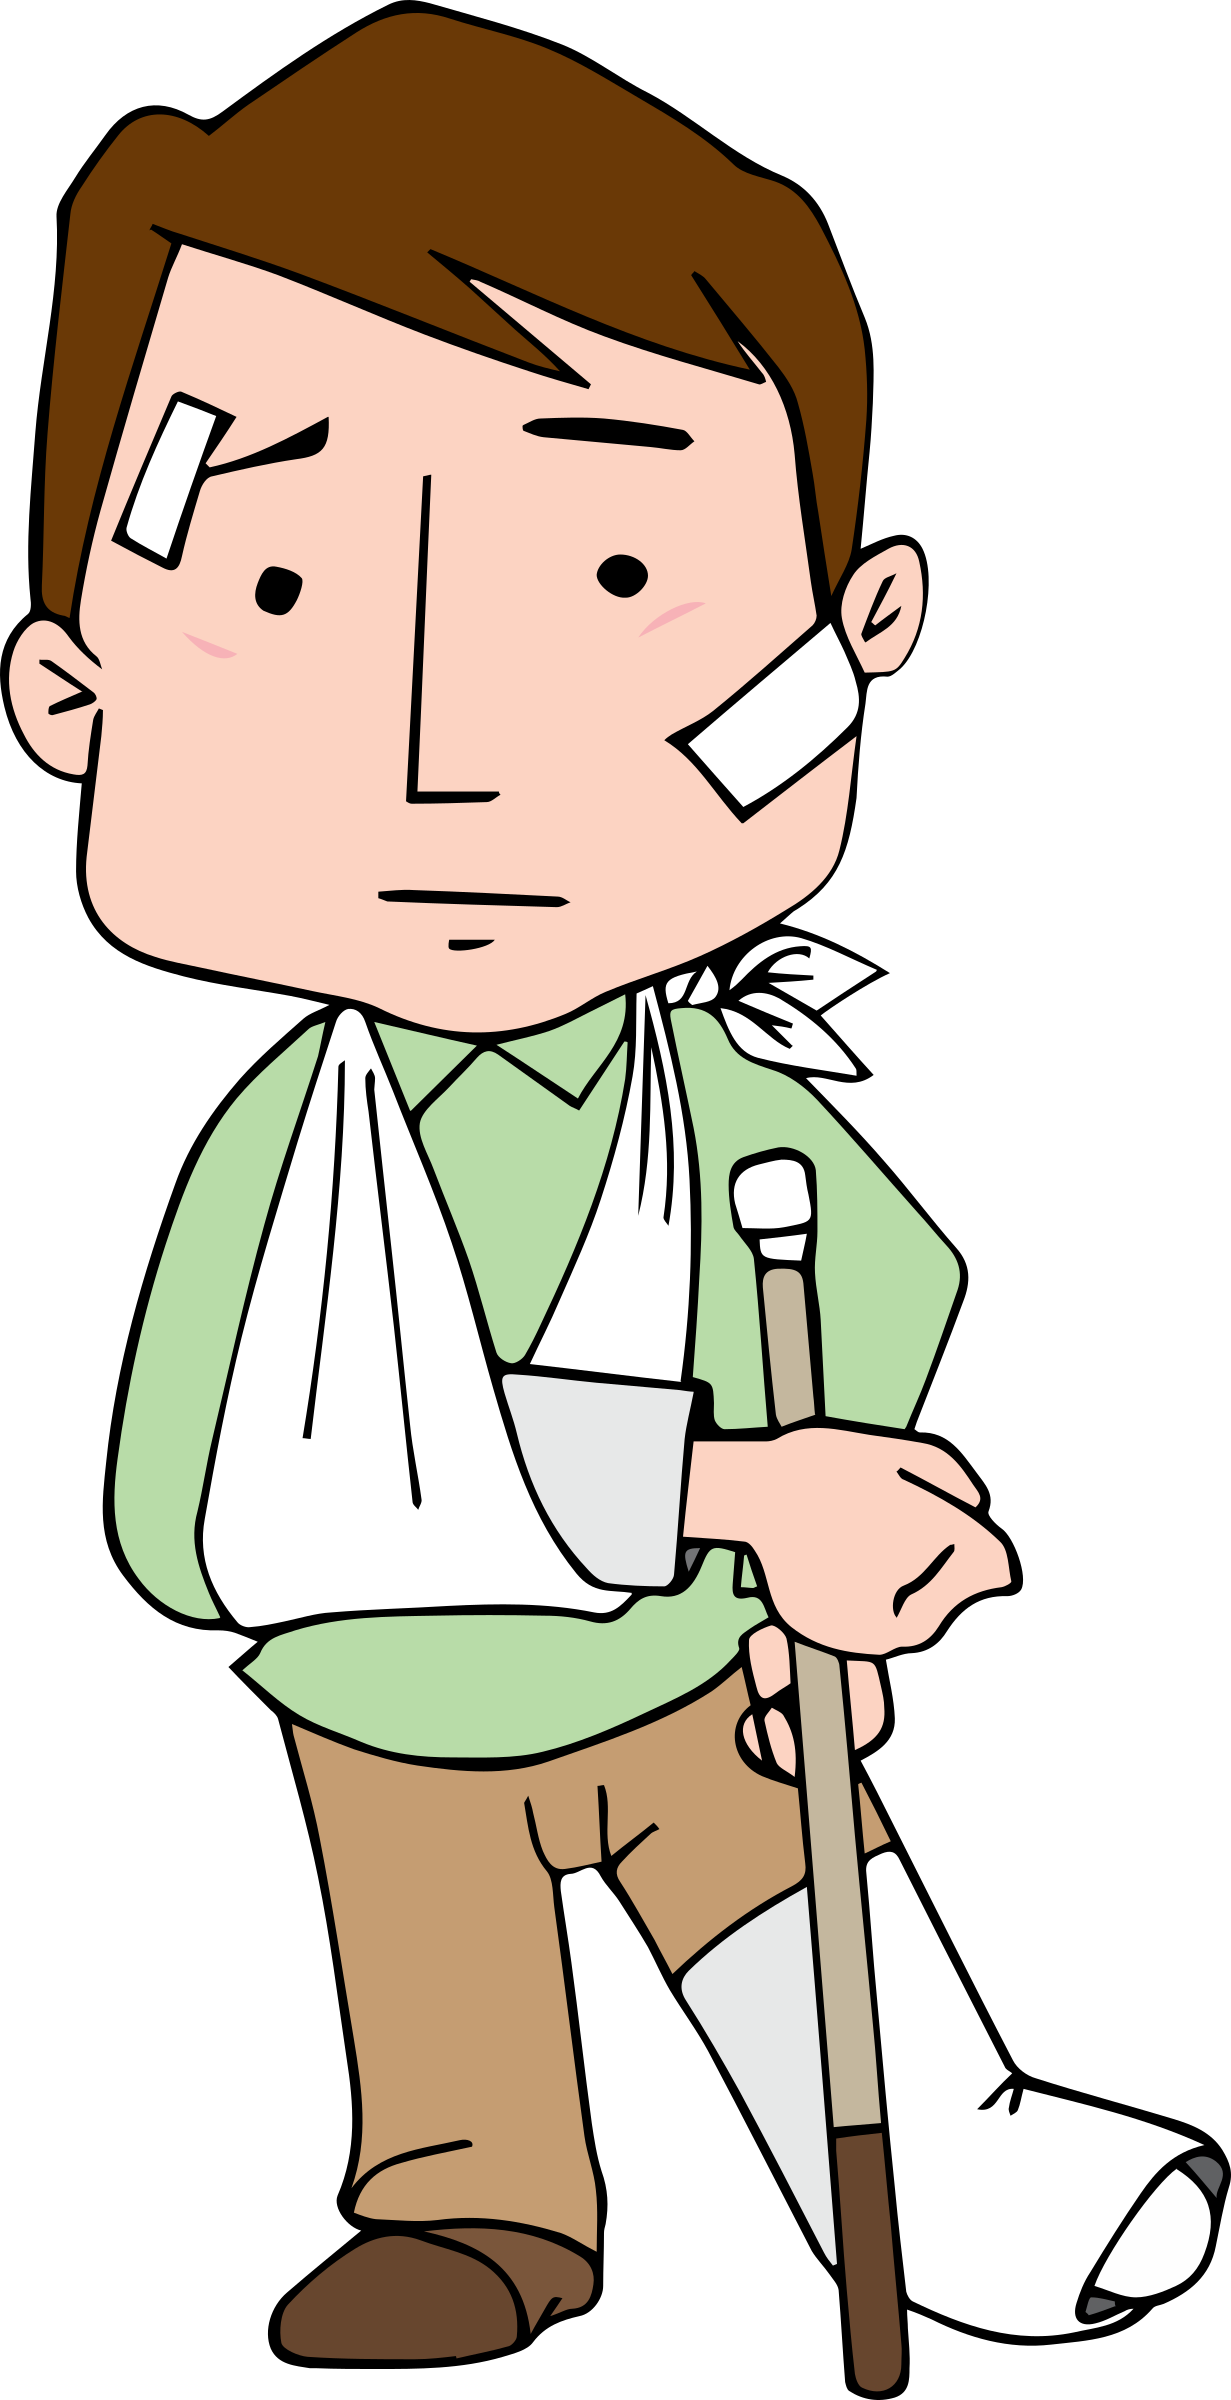 Injured big image png. Injury clipart